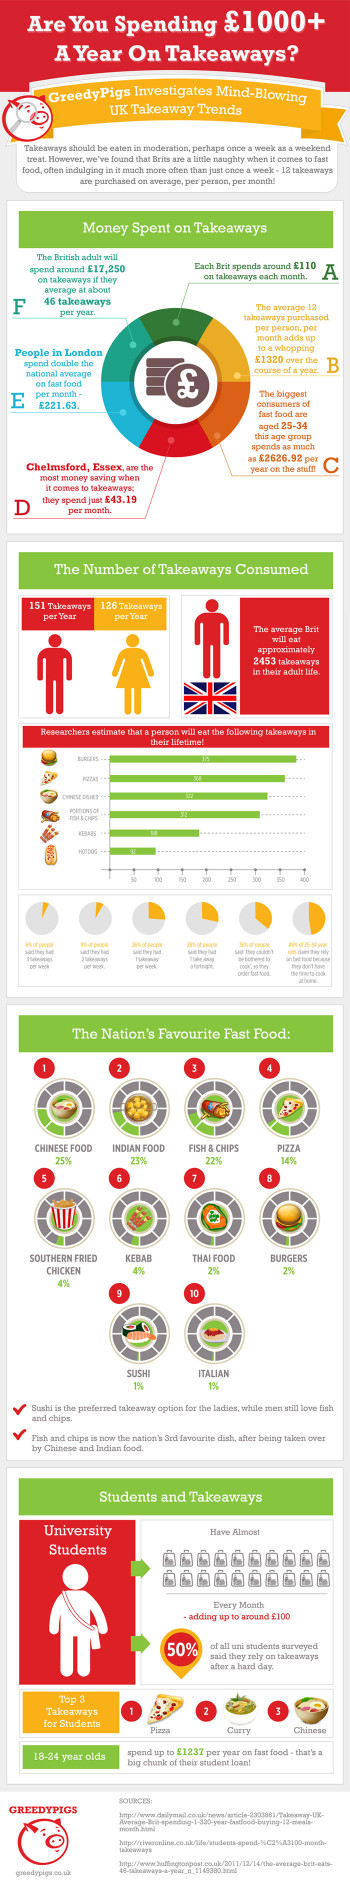 Example of an infographic from the infographic design service created by FATJOE